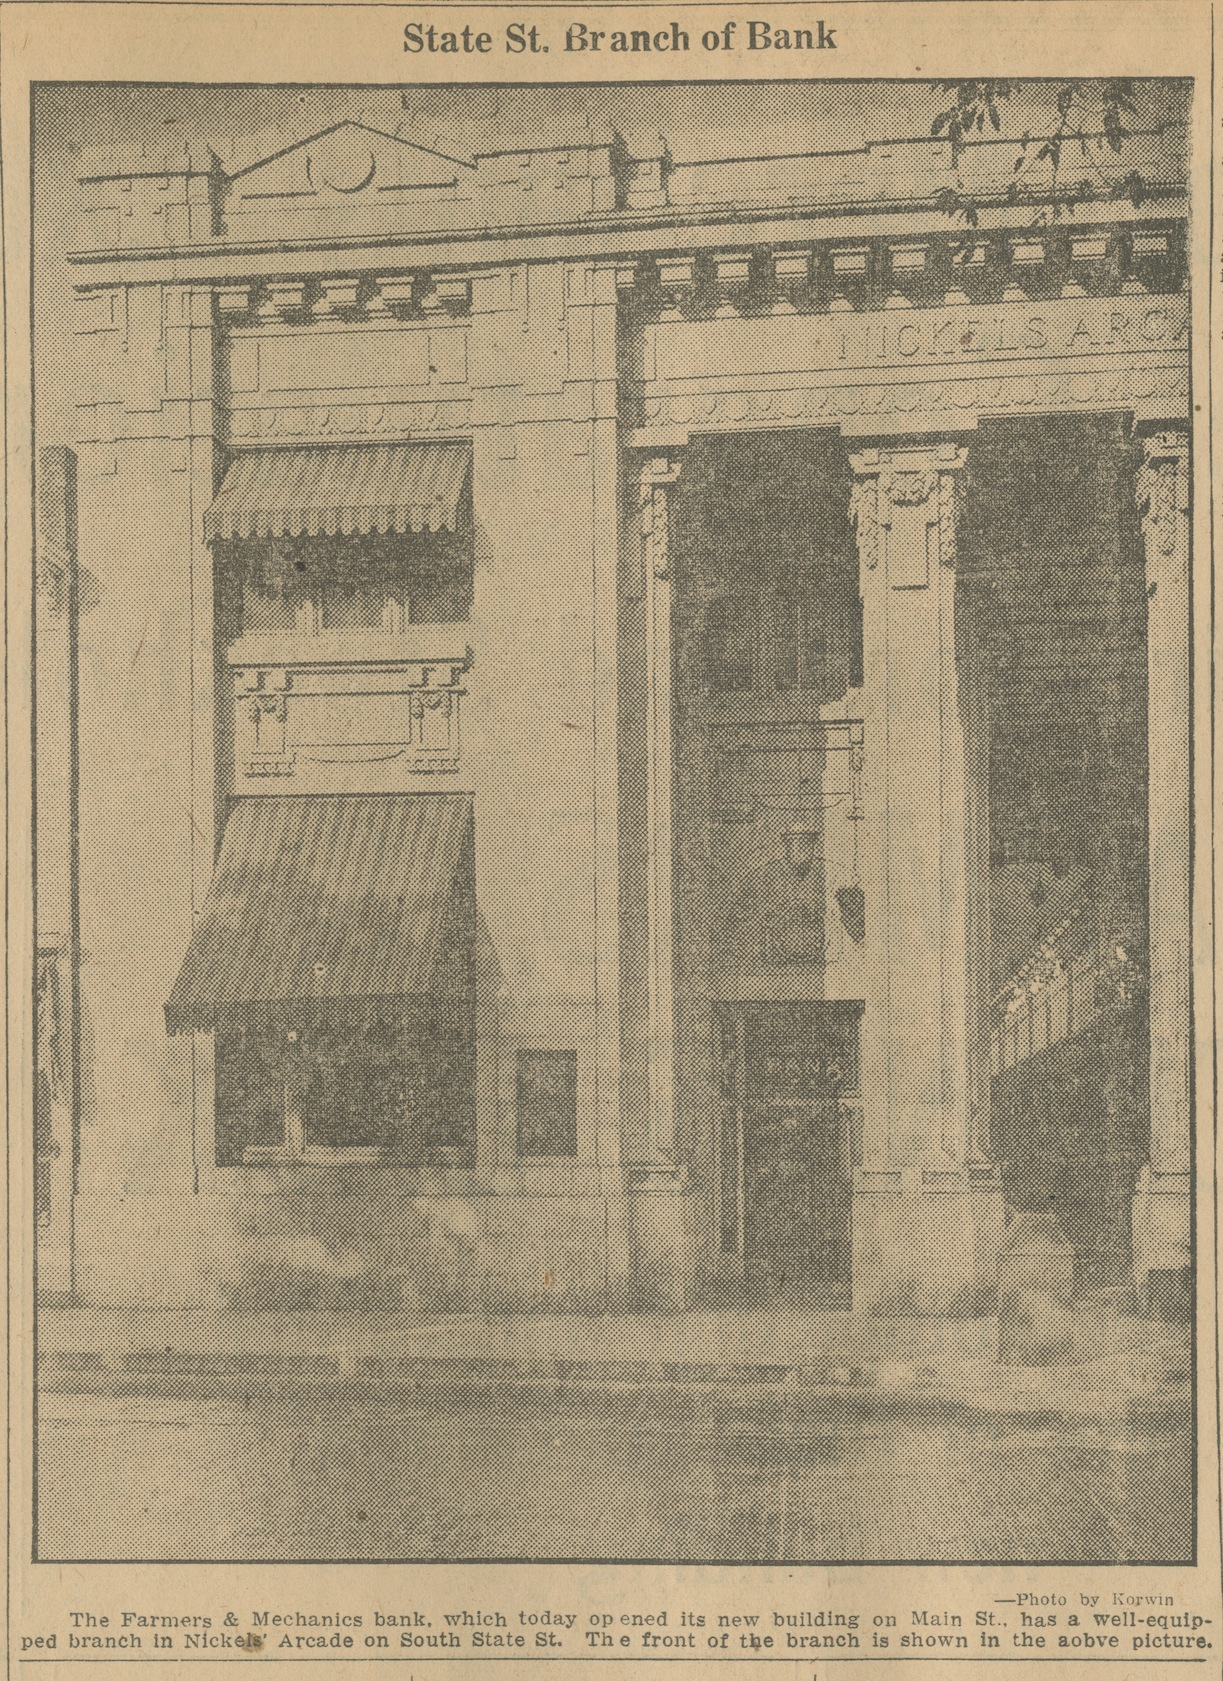 State St. Branch of Bank image